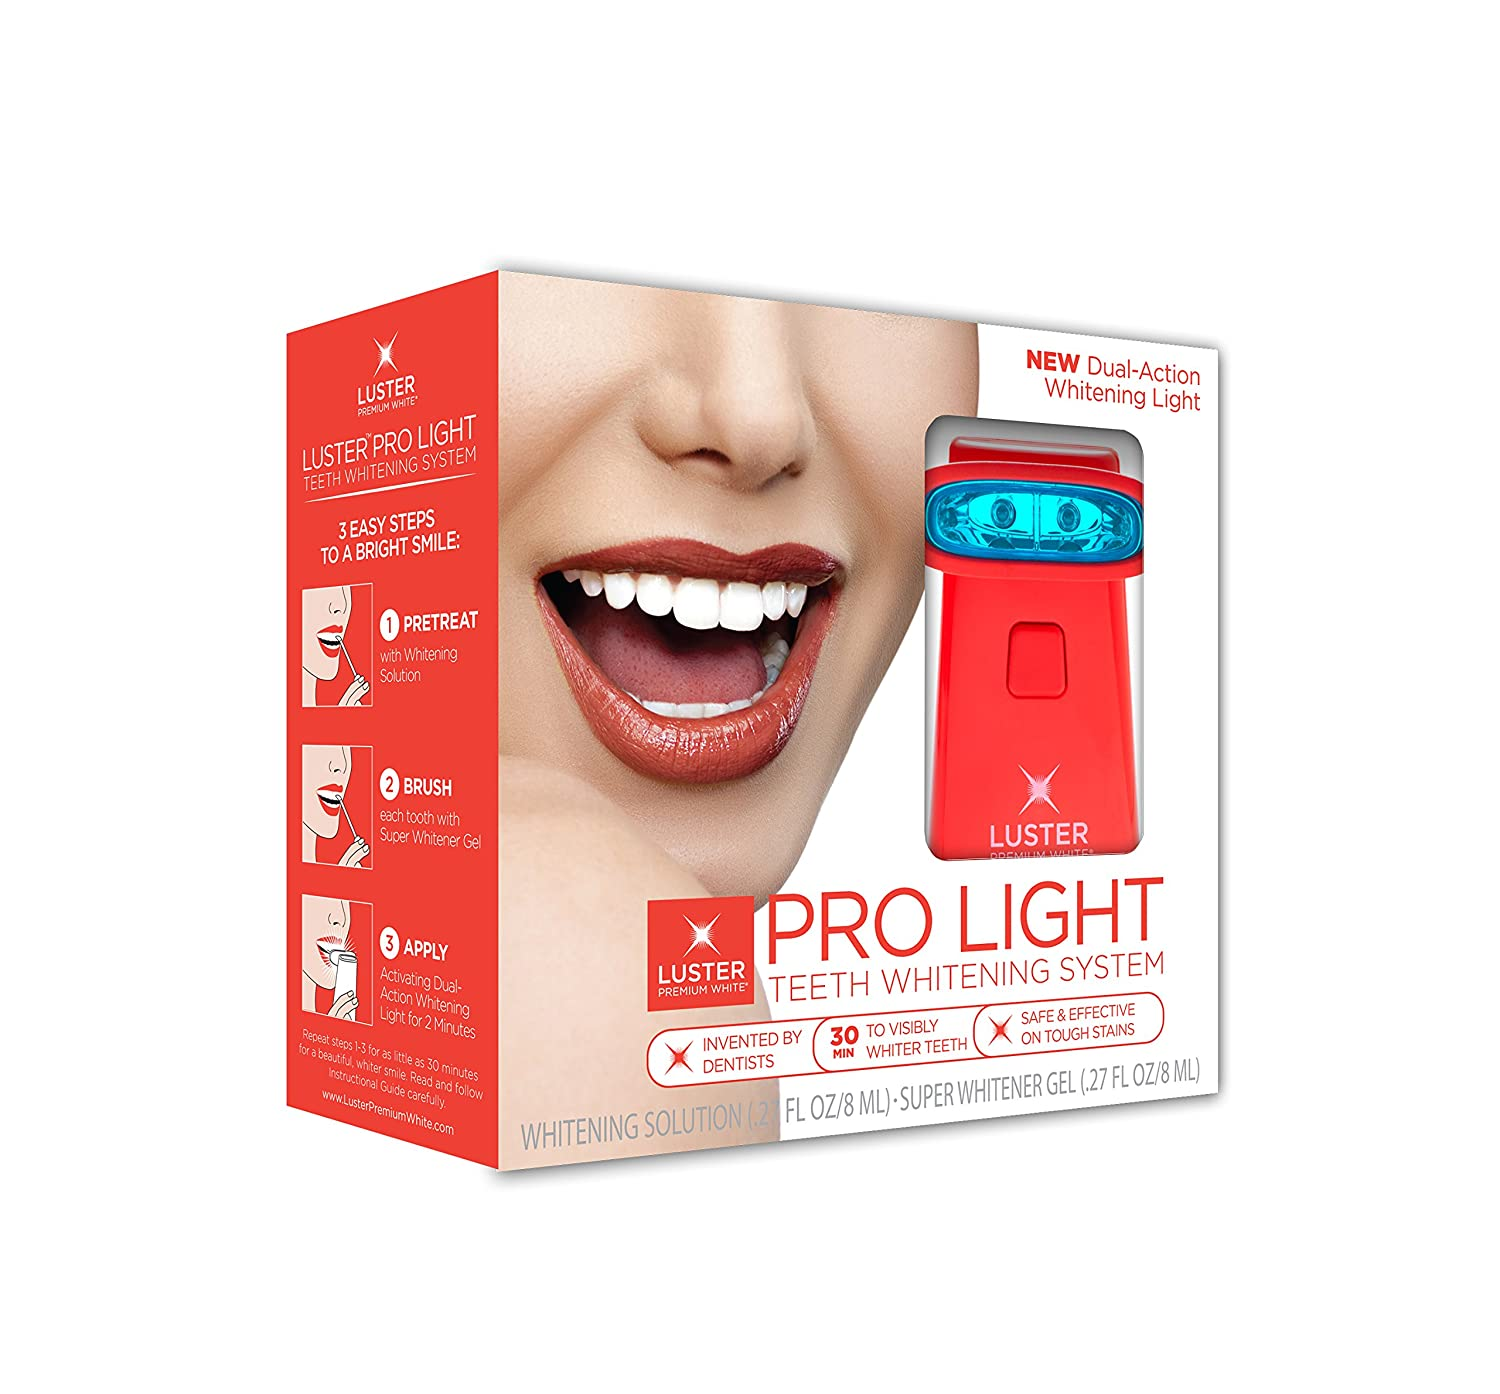 luster pro light teeth whitening system with whitening solution gel